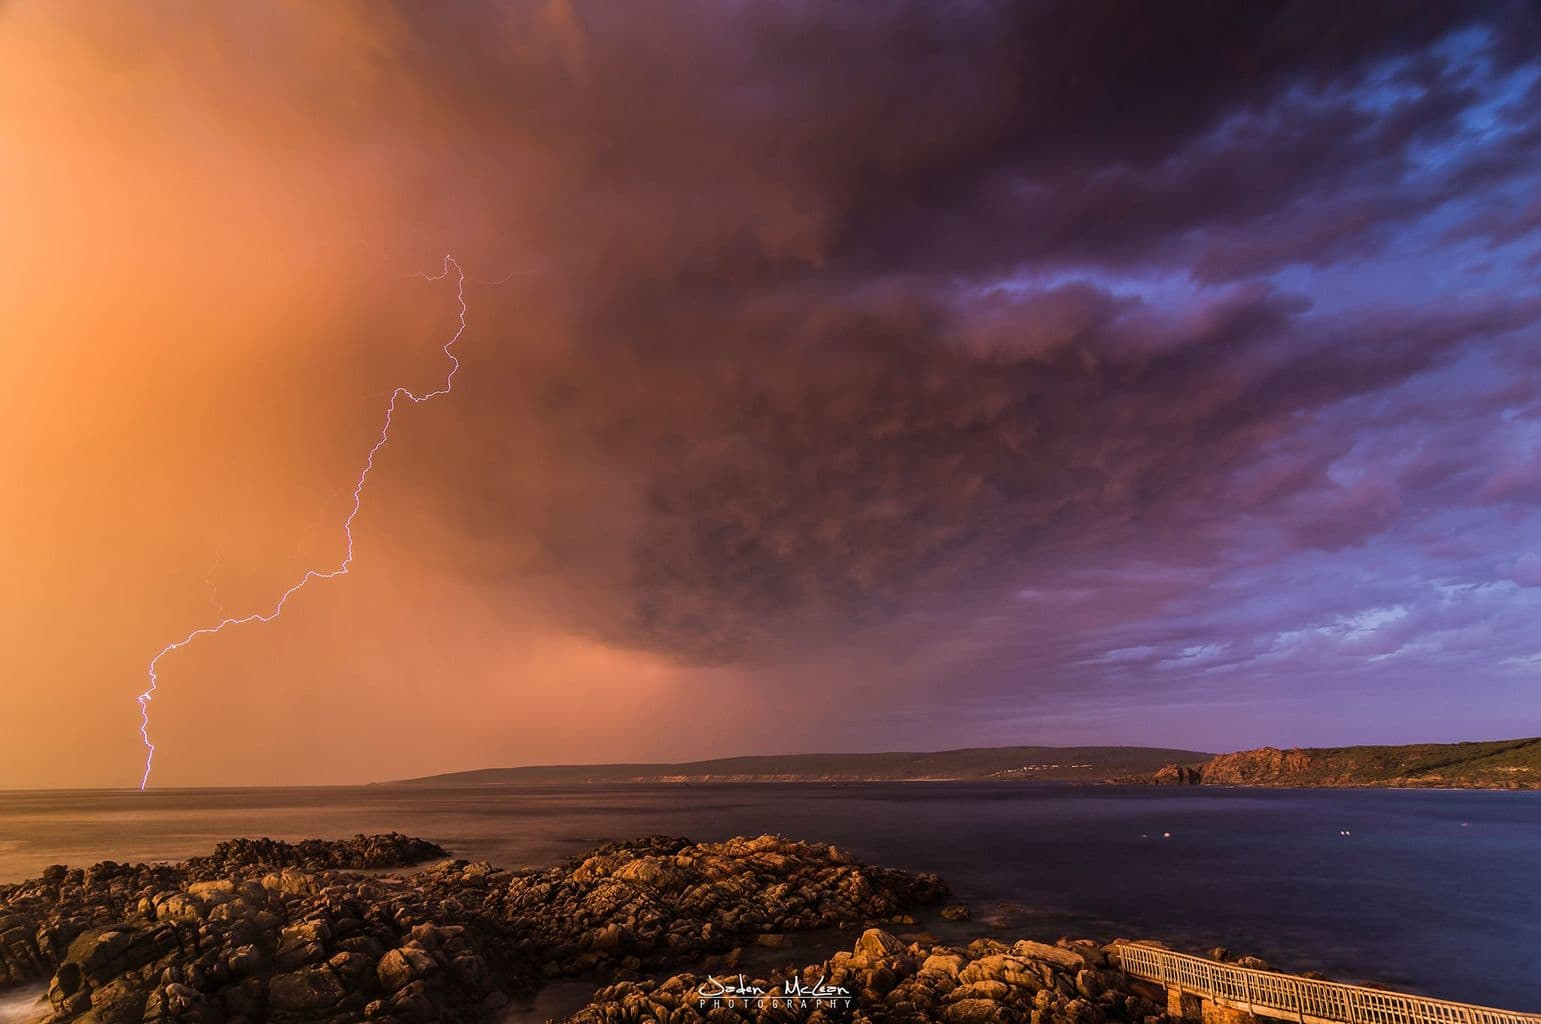 Image from 3rd February 2015, Yallingup, Western Australia. Was an awesome sunset lightning show.